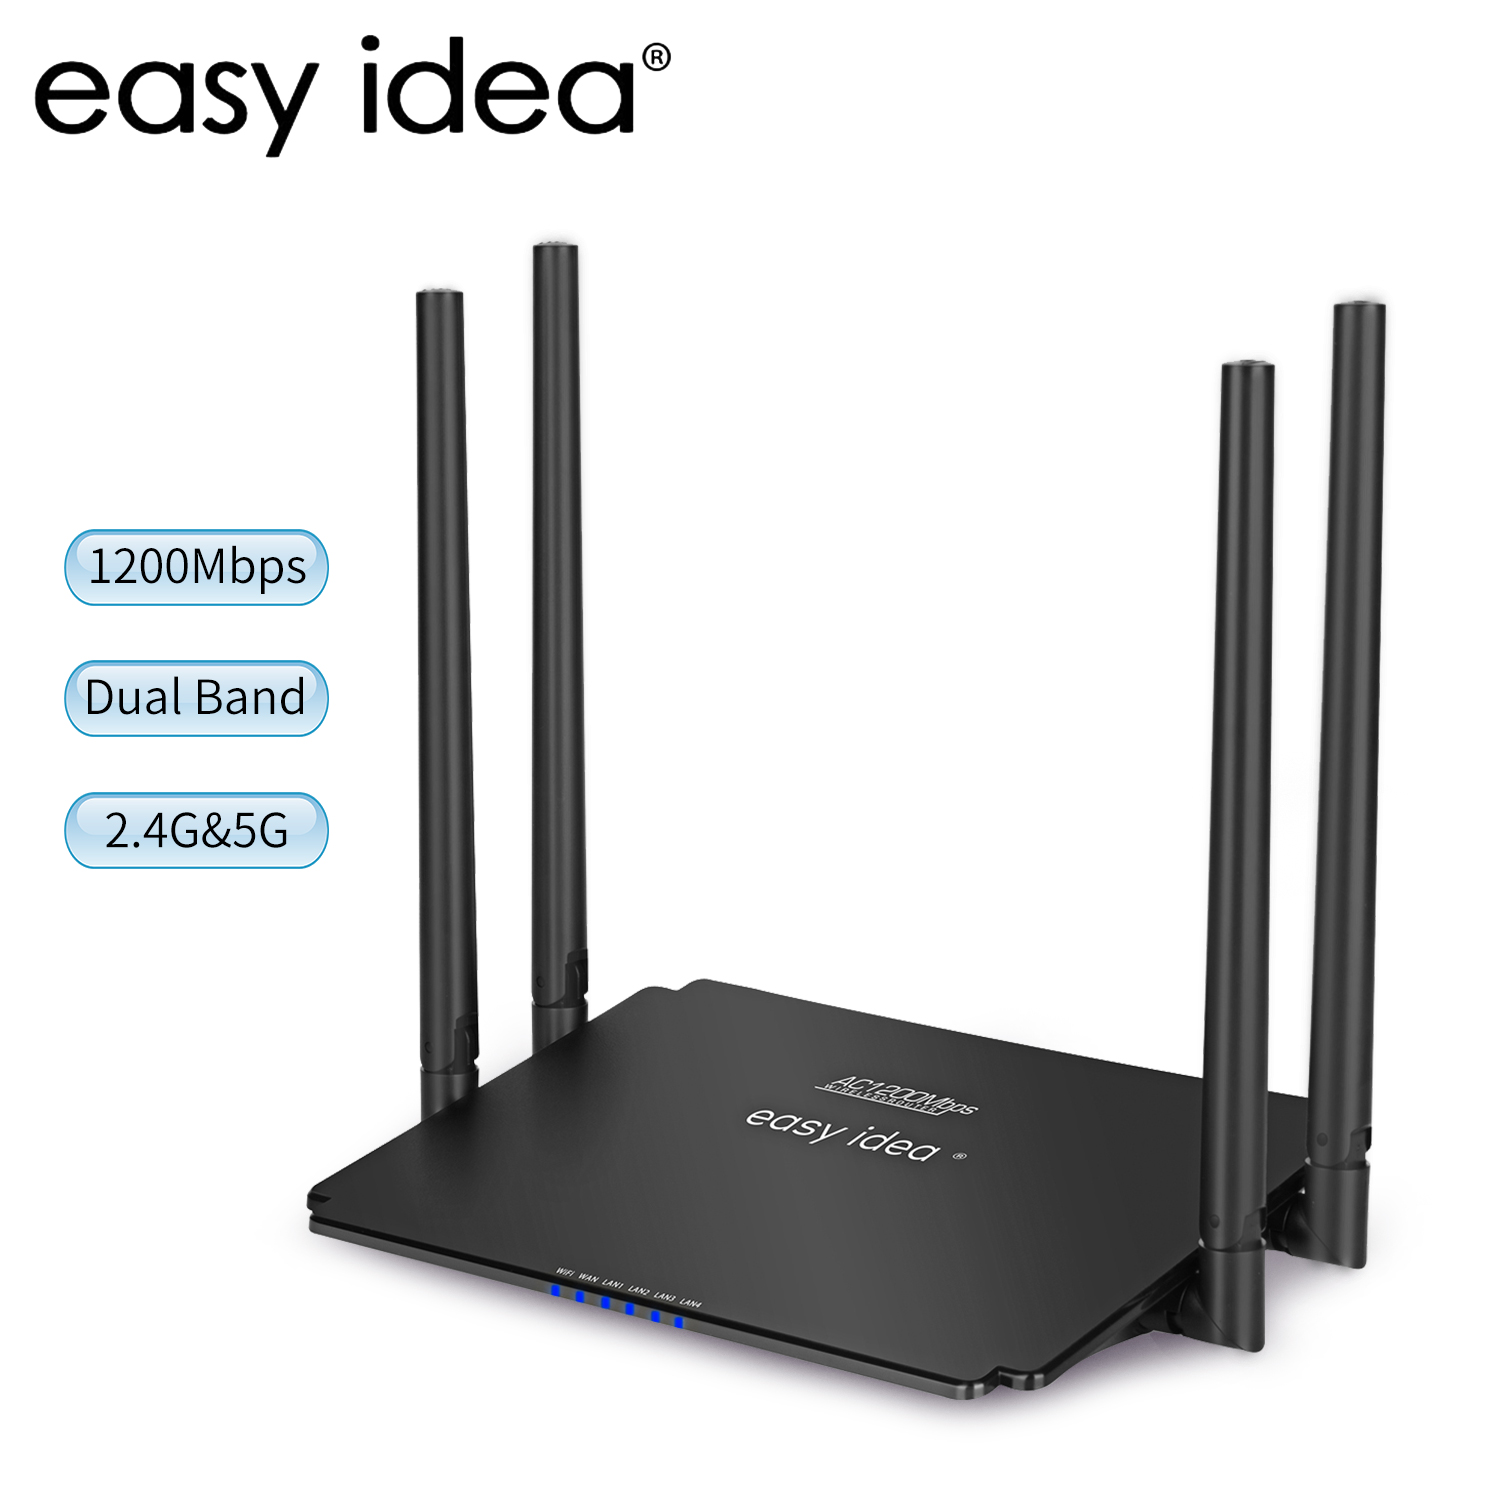 WiFi Router Verstärker WiFi Extender 1200 Mbps Router Wi-Fi Access Point Dual Band 2,4G/5 Ghz Smart APP control Wi Fi Router